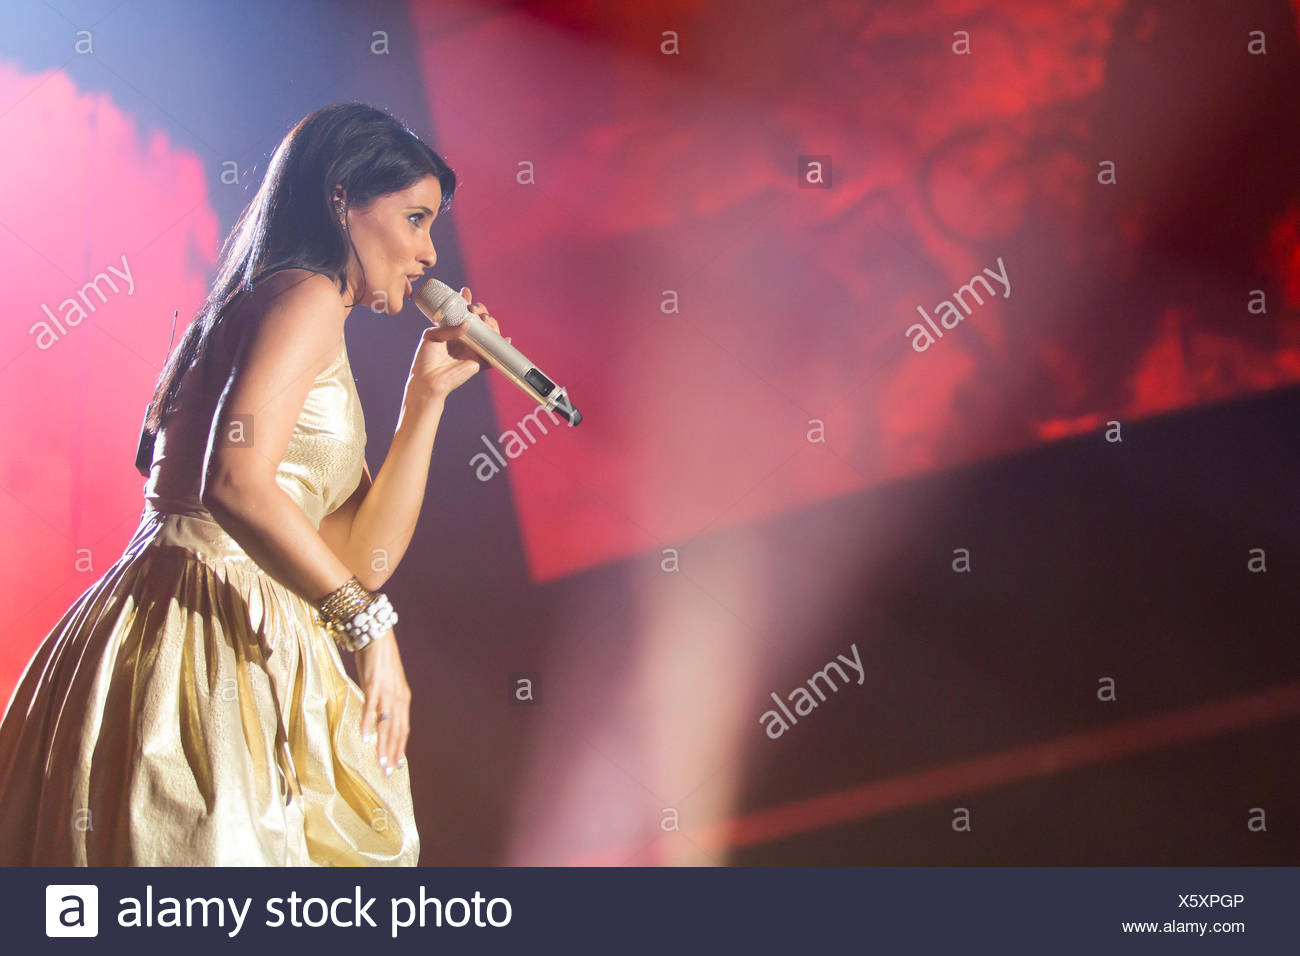 The Portuguese-Canadian singer Nelly Furtado performing live at the Energy Stars For Free event, Hallenstadion Zuerich hall - Stock Image